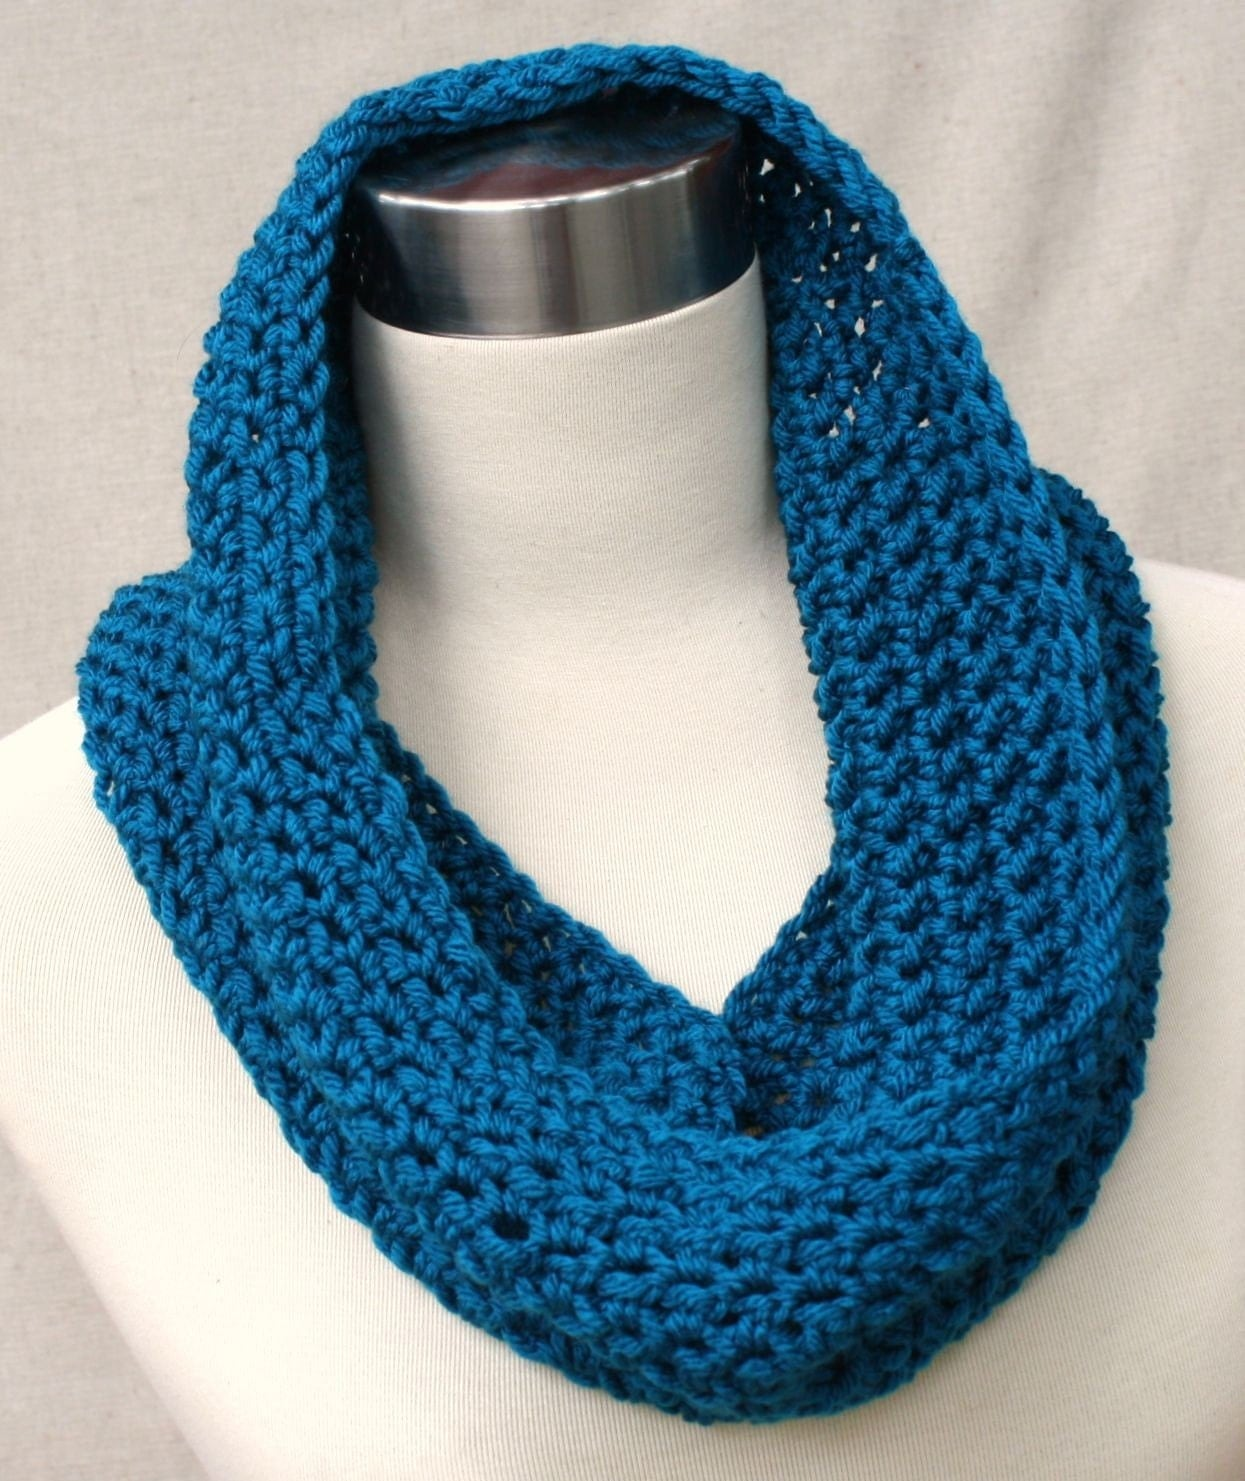 Crochet Patterns Neck Scarves : Crochet Grey Scarf Neck Warmer Cowl Scarf From Levintovich